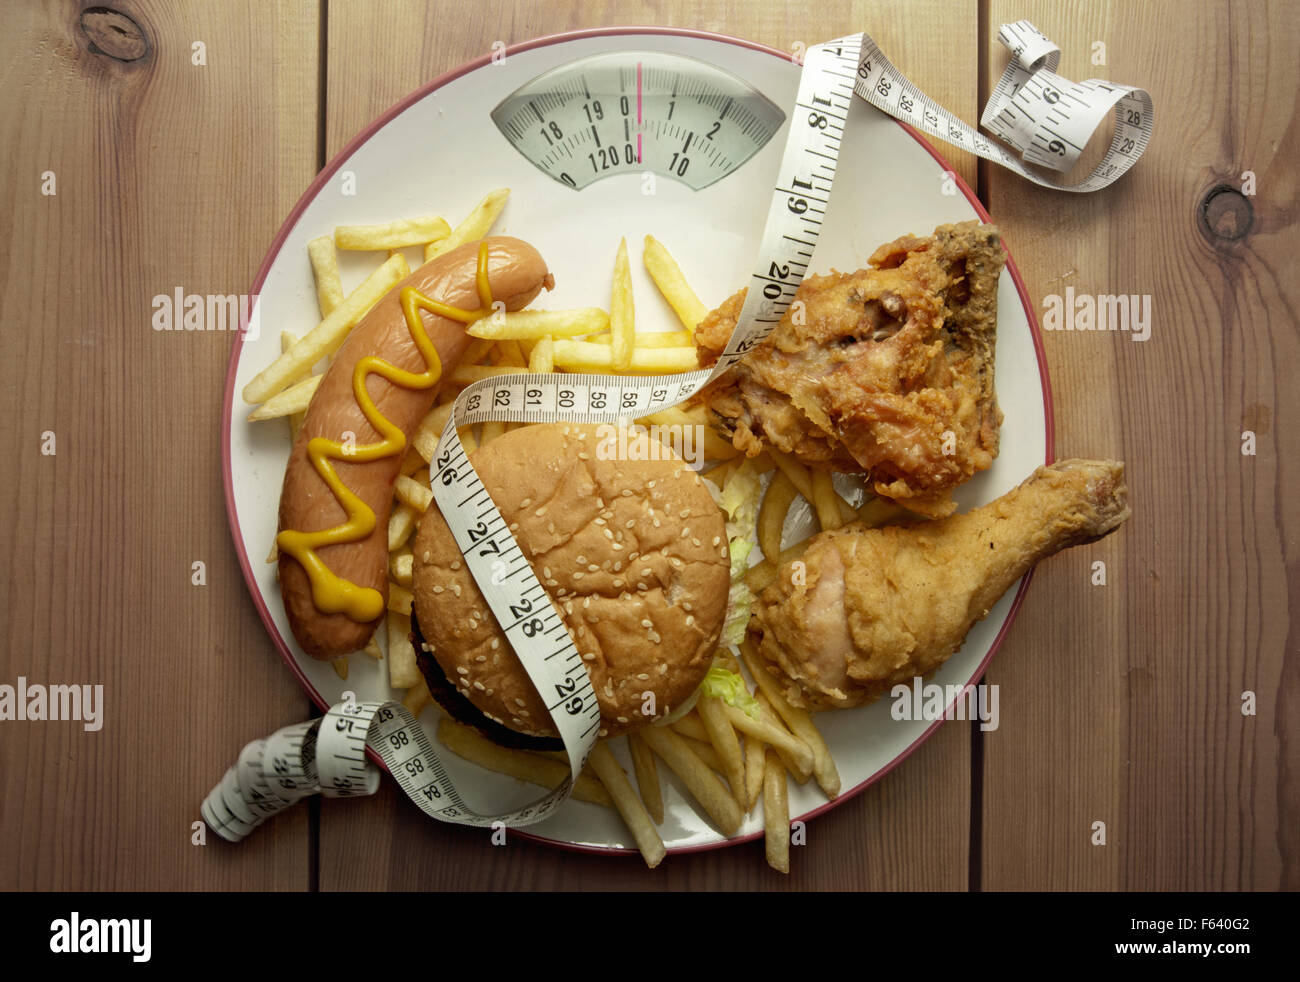 Plate packed with junk food with weighing scales - Stock Image